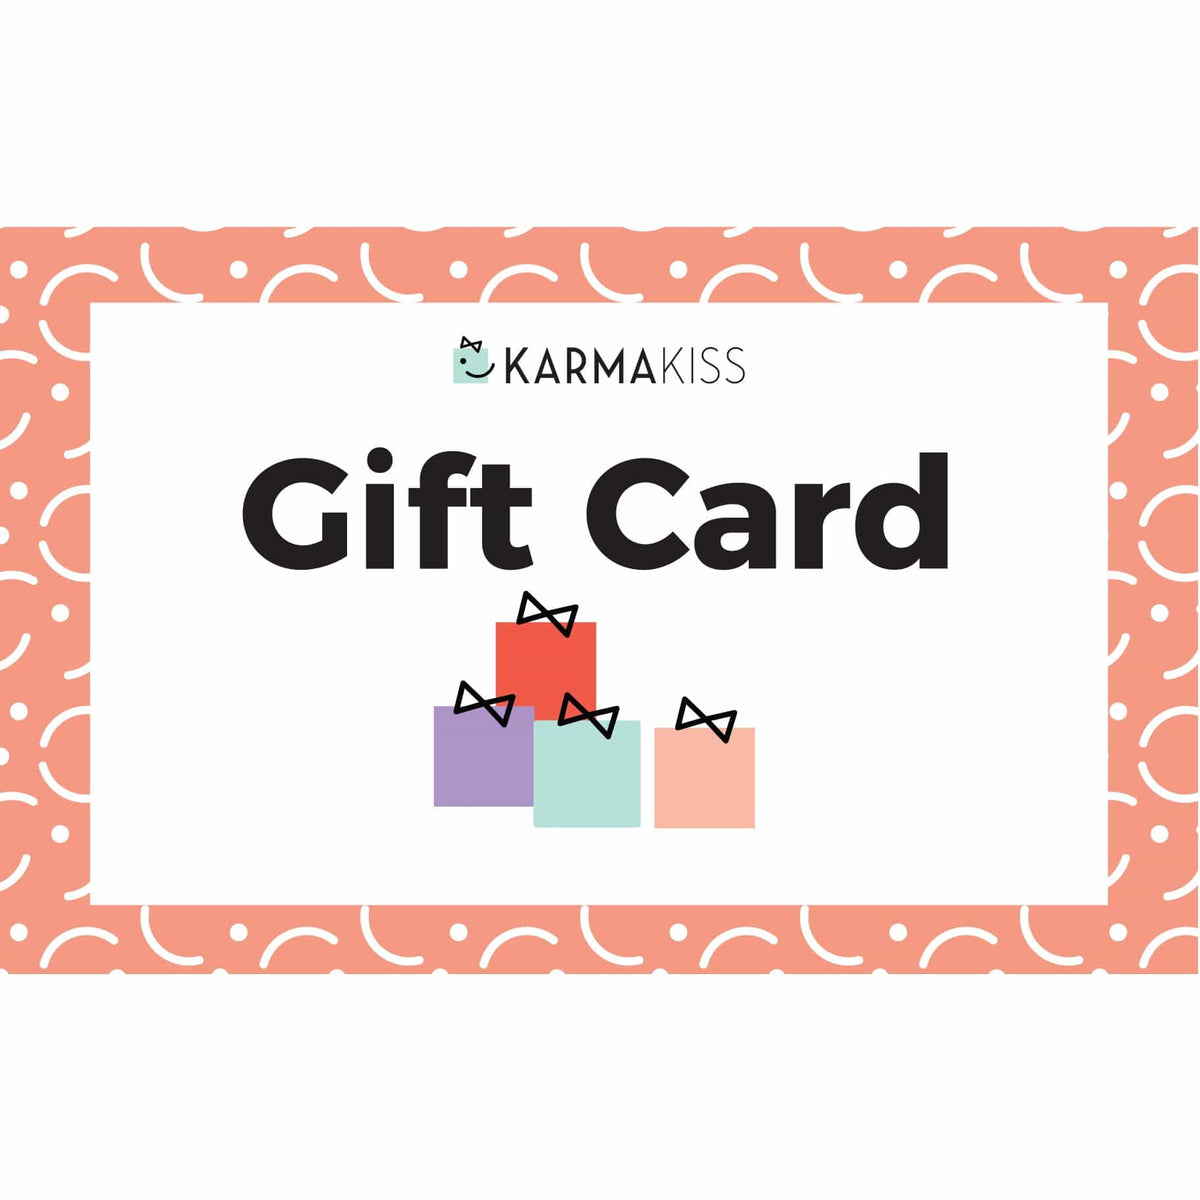 Karma Kiss Gift Card Karma Kiss Gift Card